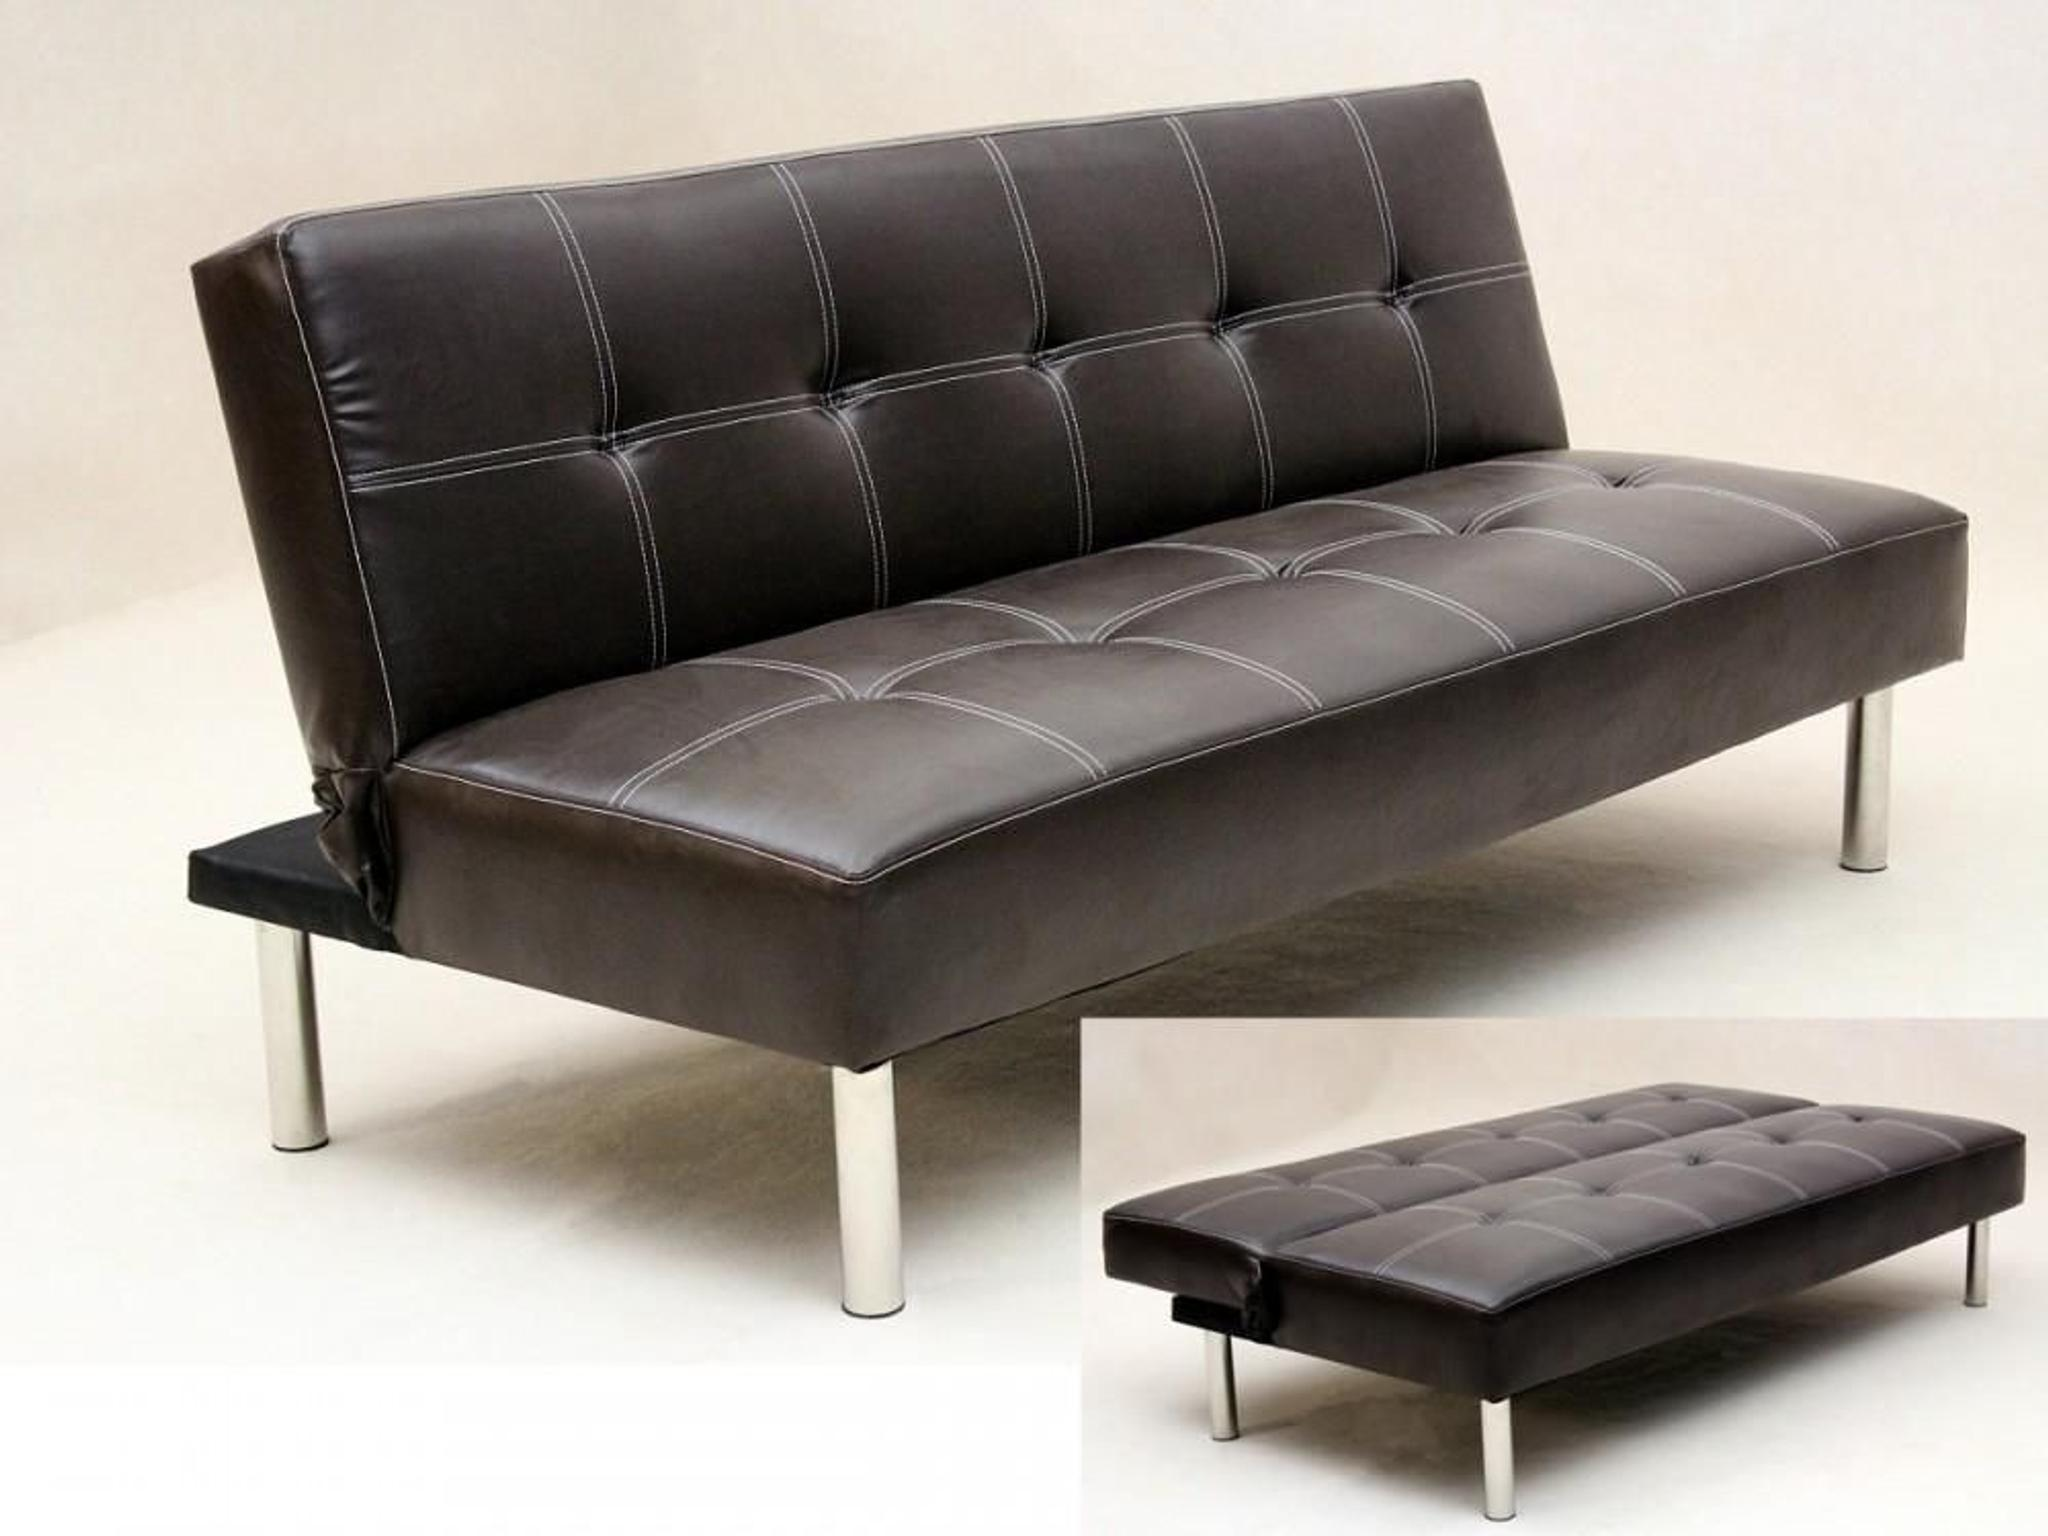 Cheapest Price On Click Clack Sofa Bed